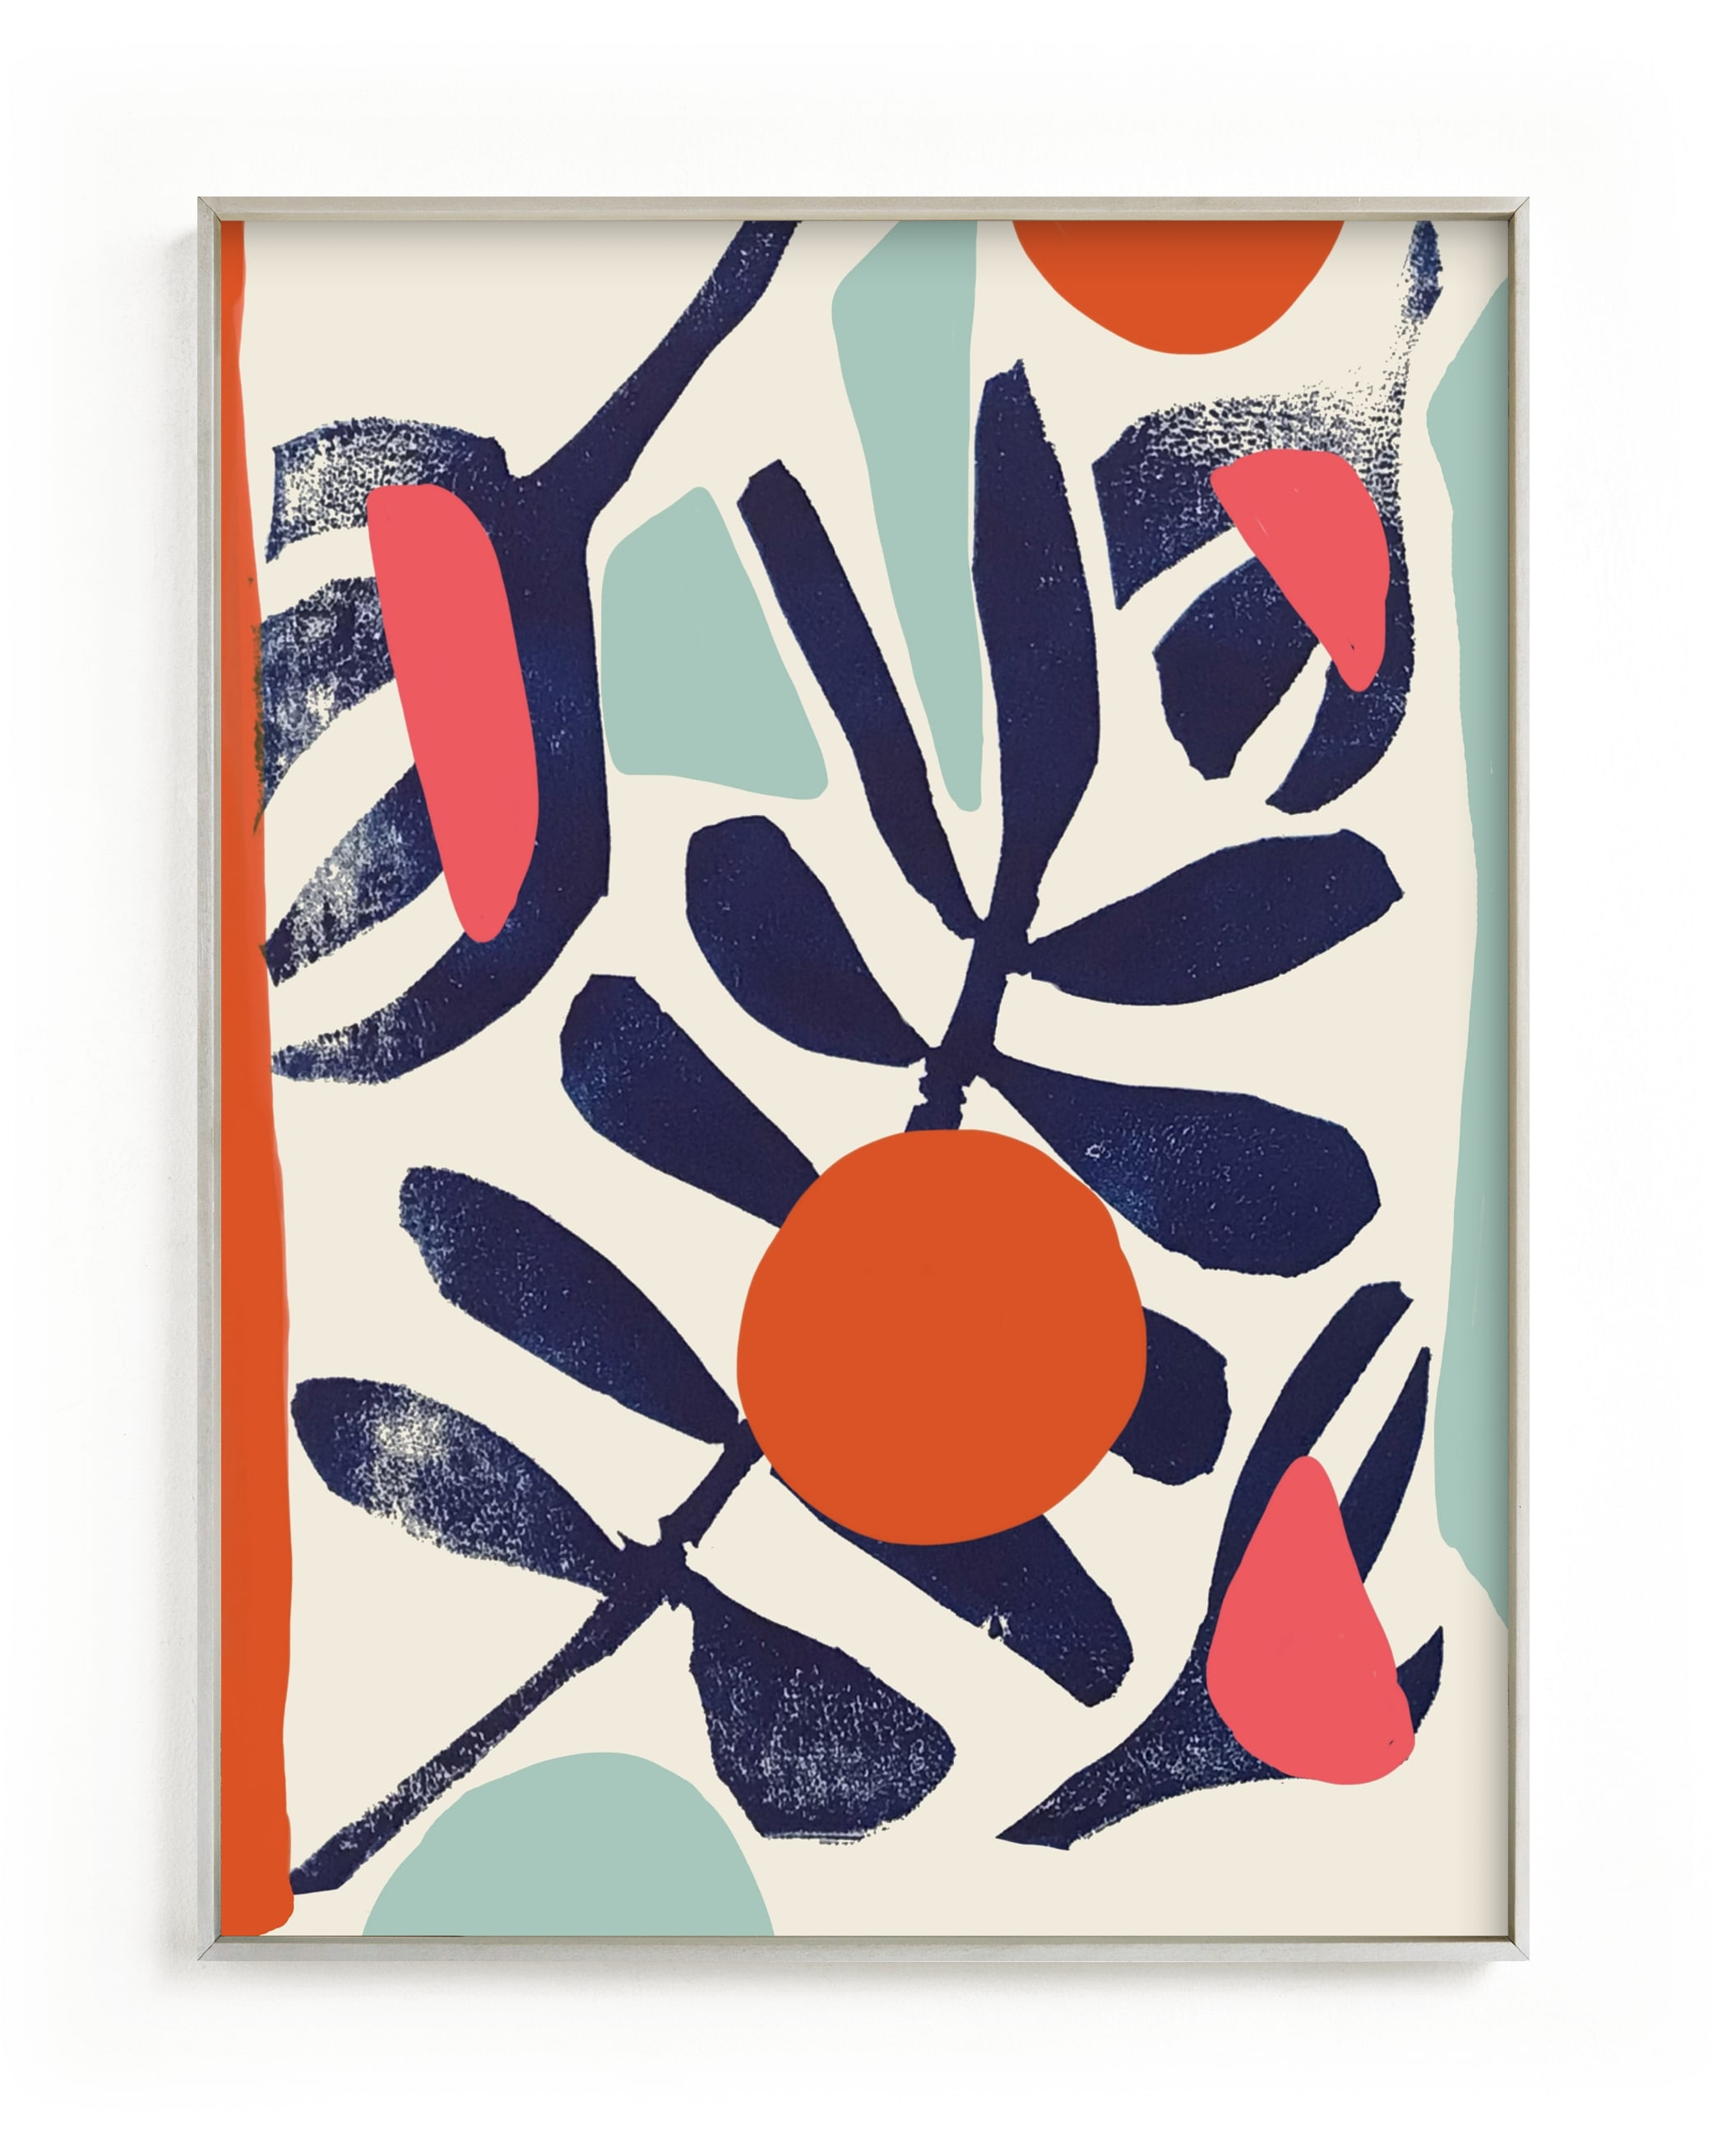 This is a blue kids wall art by Deborah Velasquez called Garden Remixed and Reimagined.